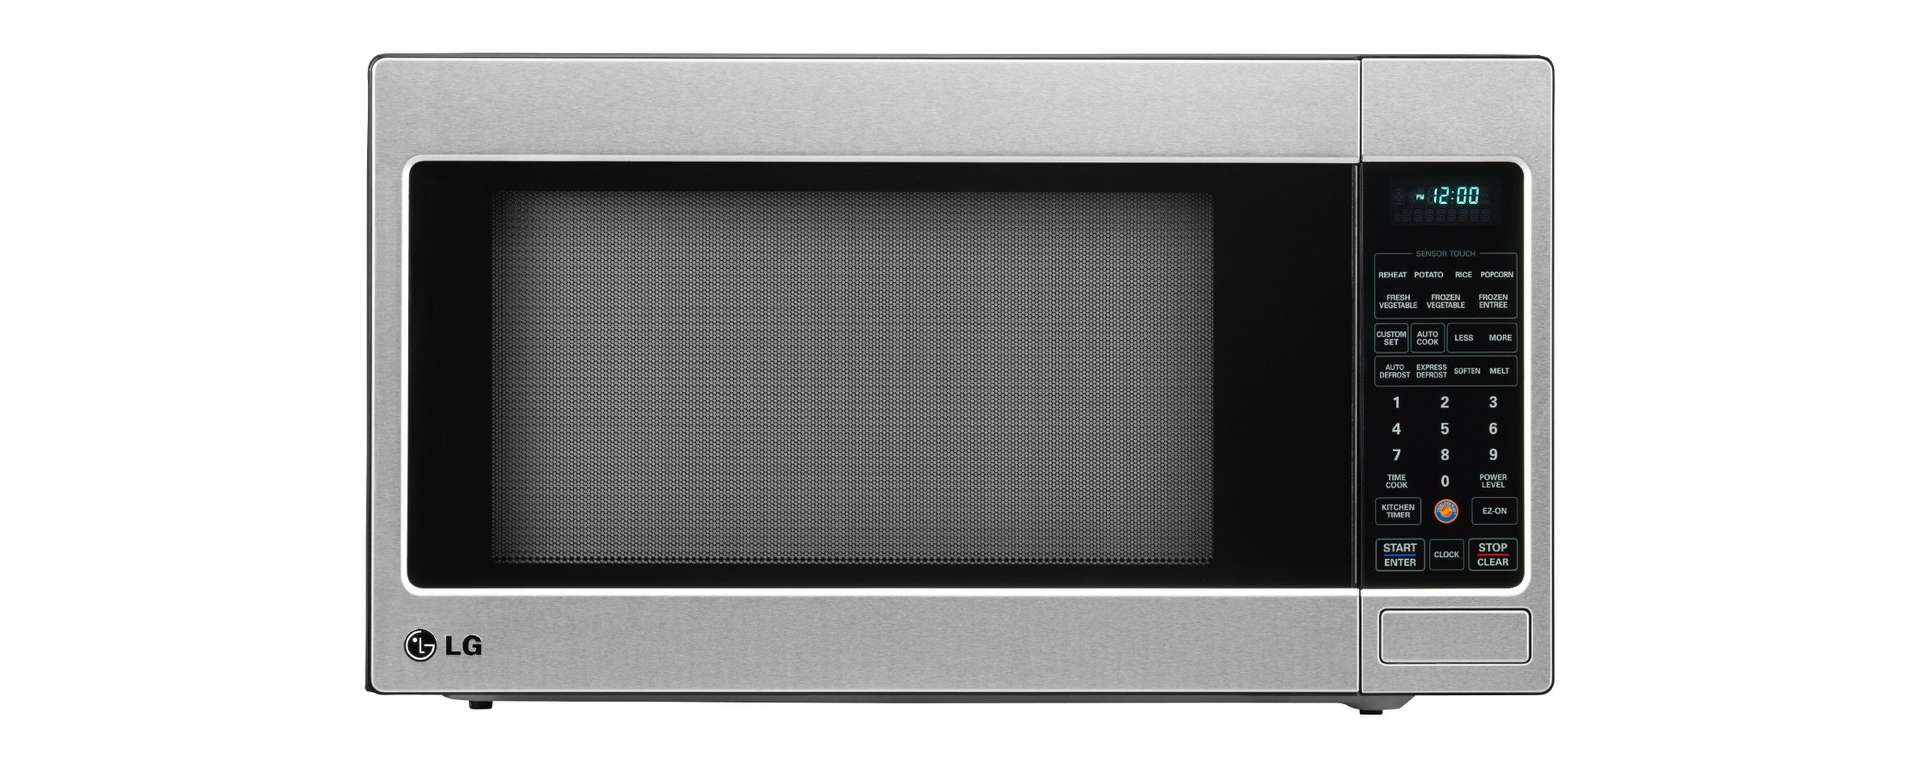 Best Over The Range Microwave Consumer Reports >> Recommended Microwave Ovens By Consumer Reports The Metaindex